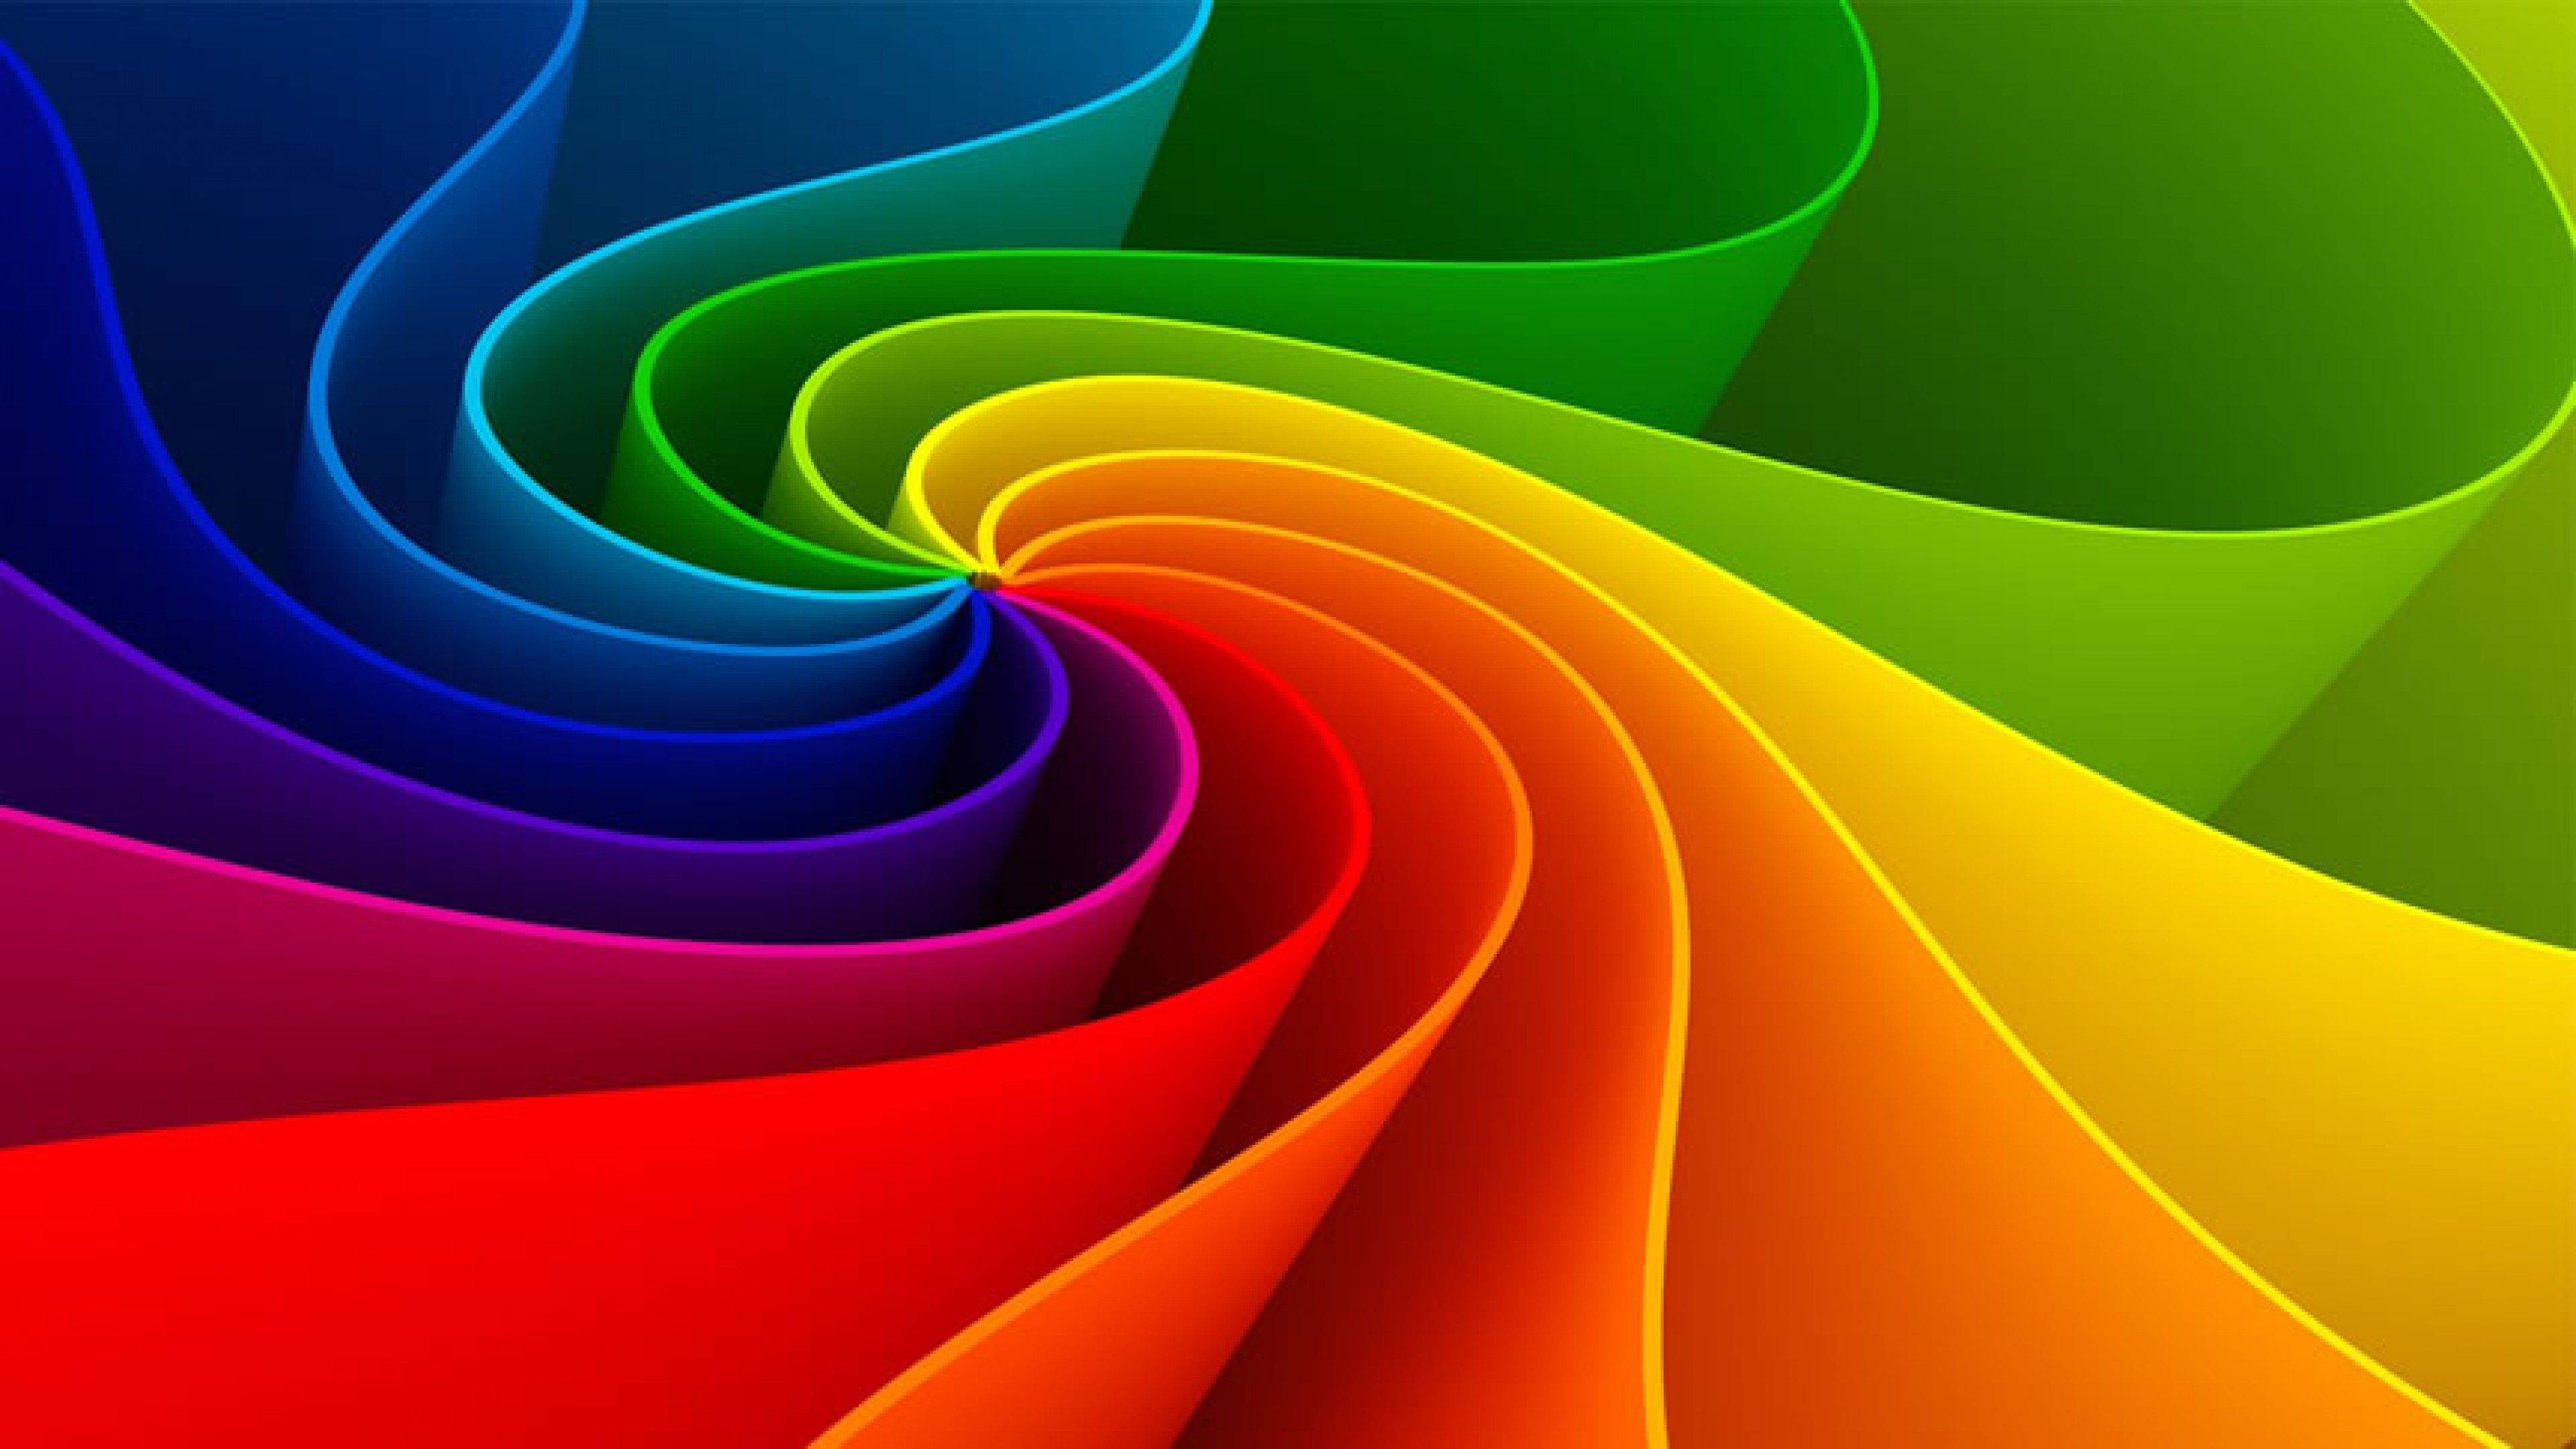 Abstract Coloured Line Wallpaper For Desktop And Mobiles 4k Ultra Hd Hd Wallpaper Wallpapers Net